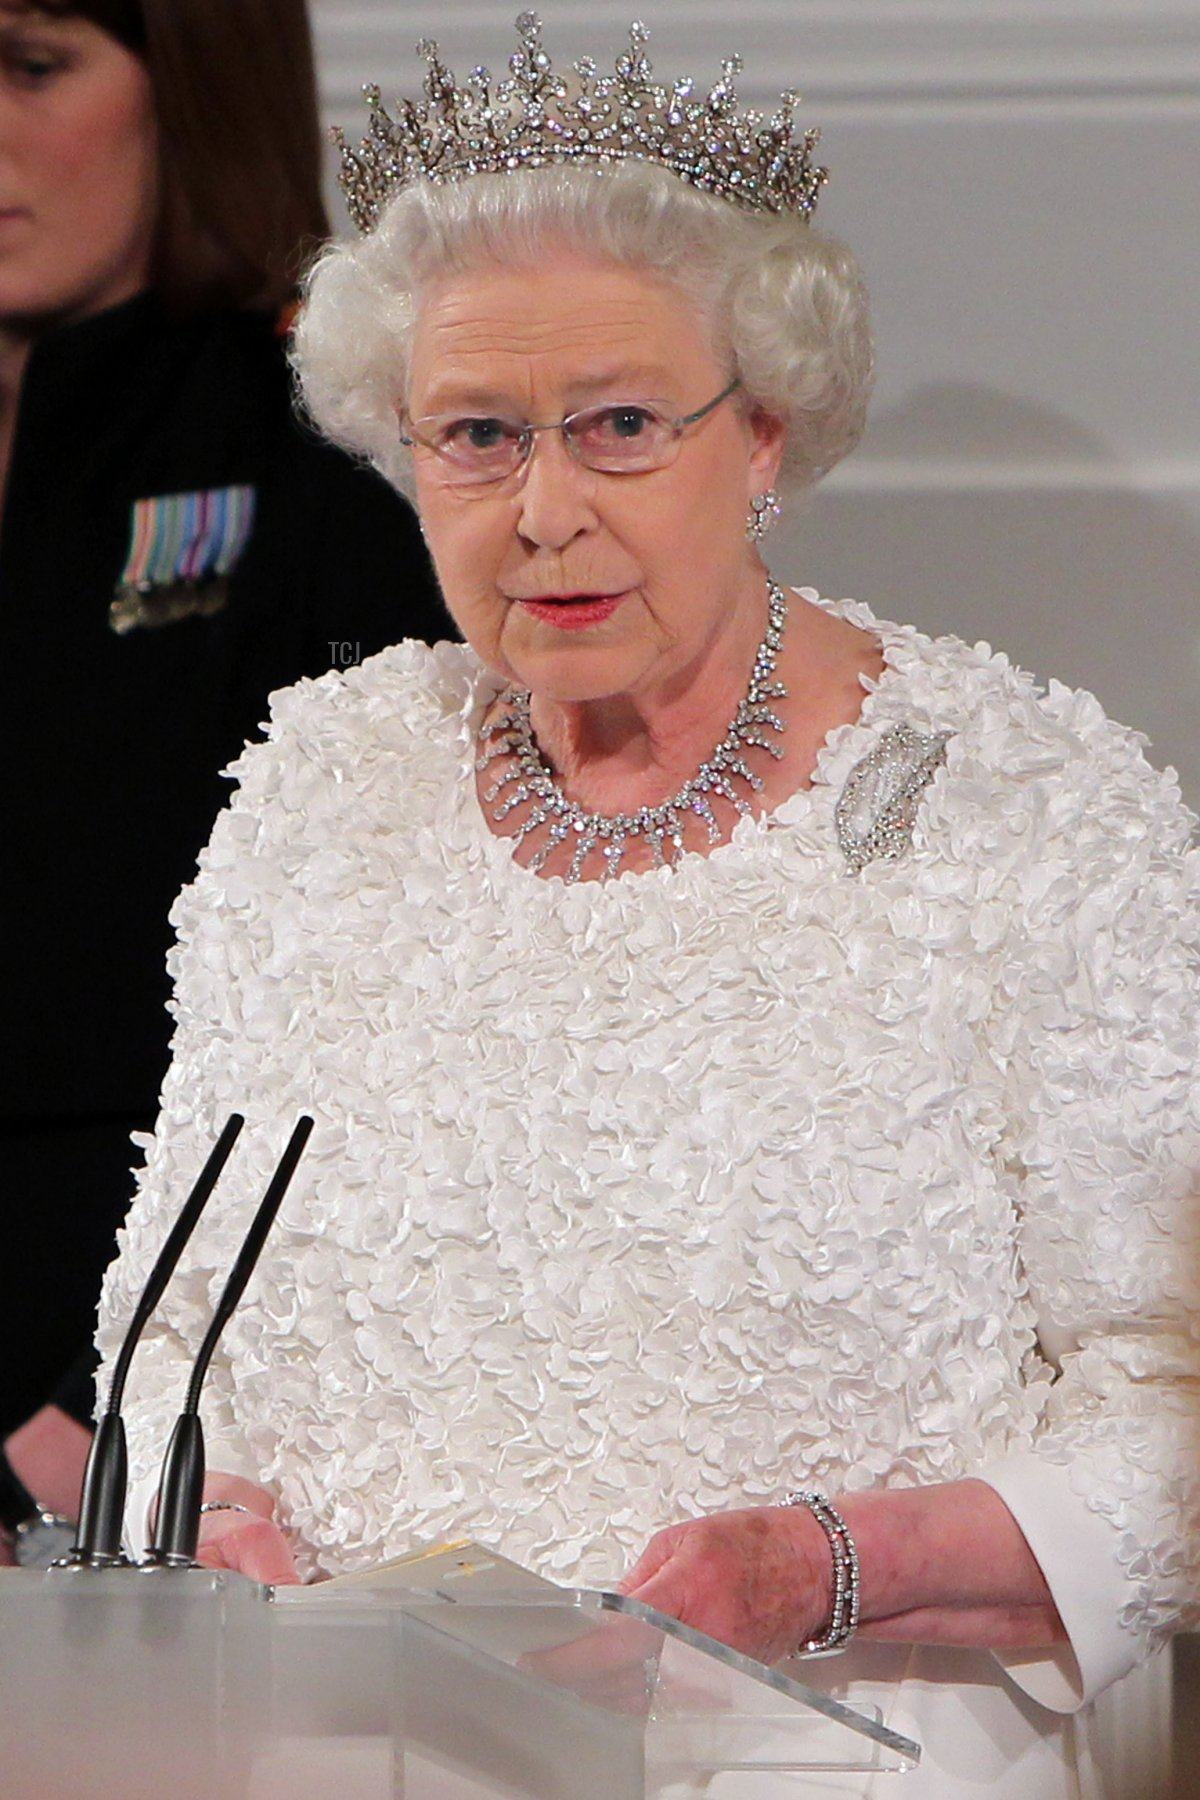 Queen Elizabeth II makes a speech during a State Dinner at Dublin Castle, on May 18, 2011 in Dublin, Ireland